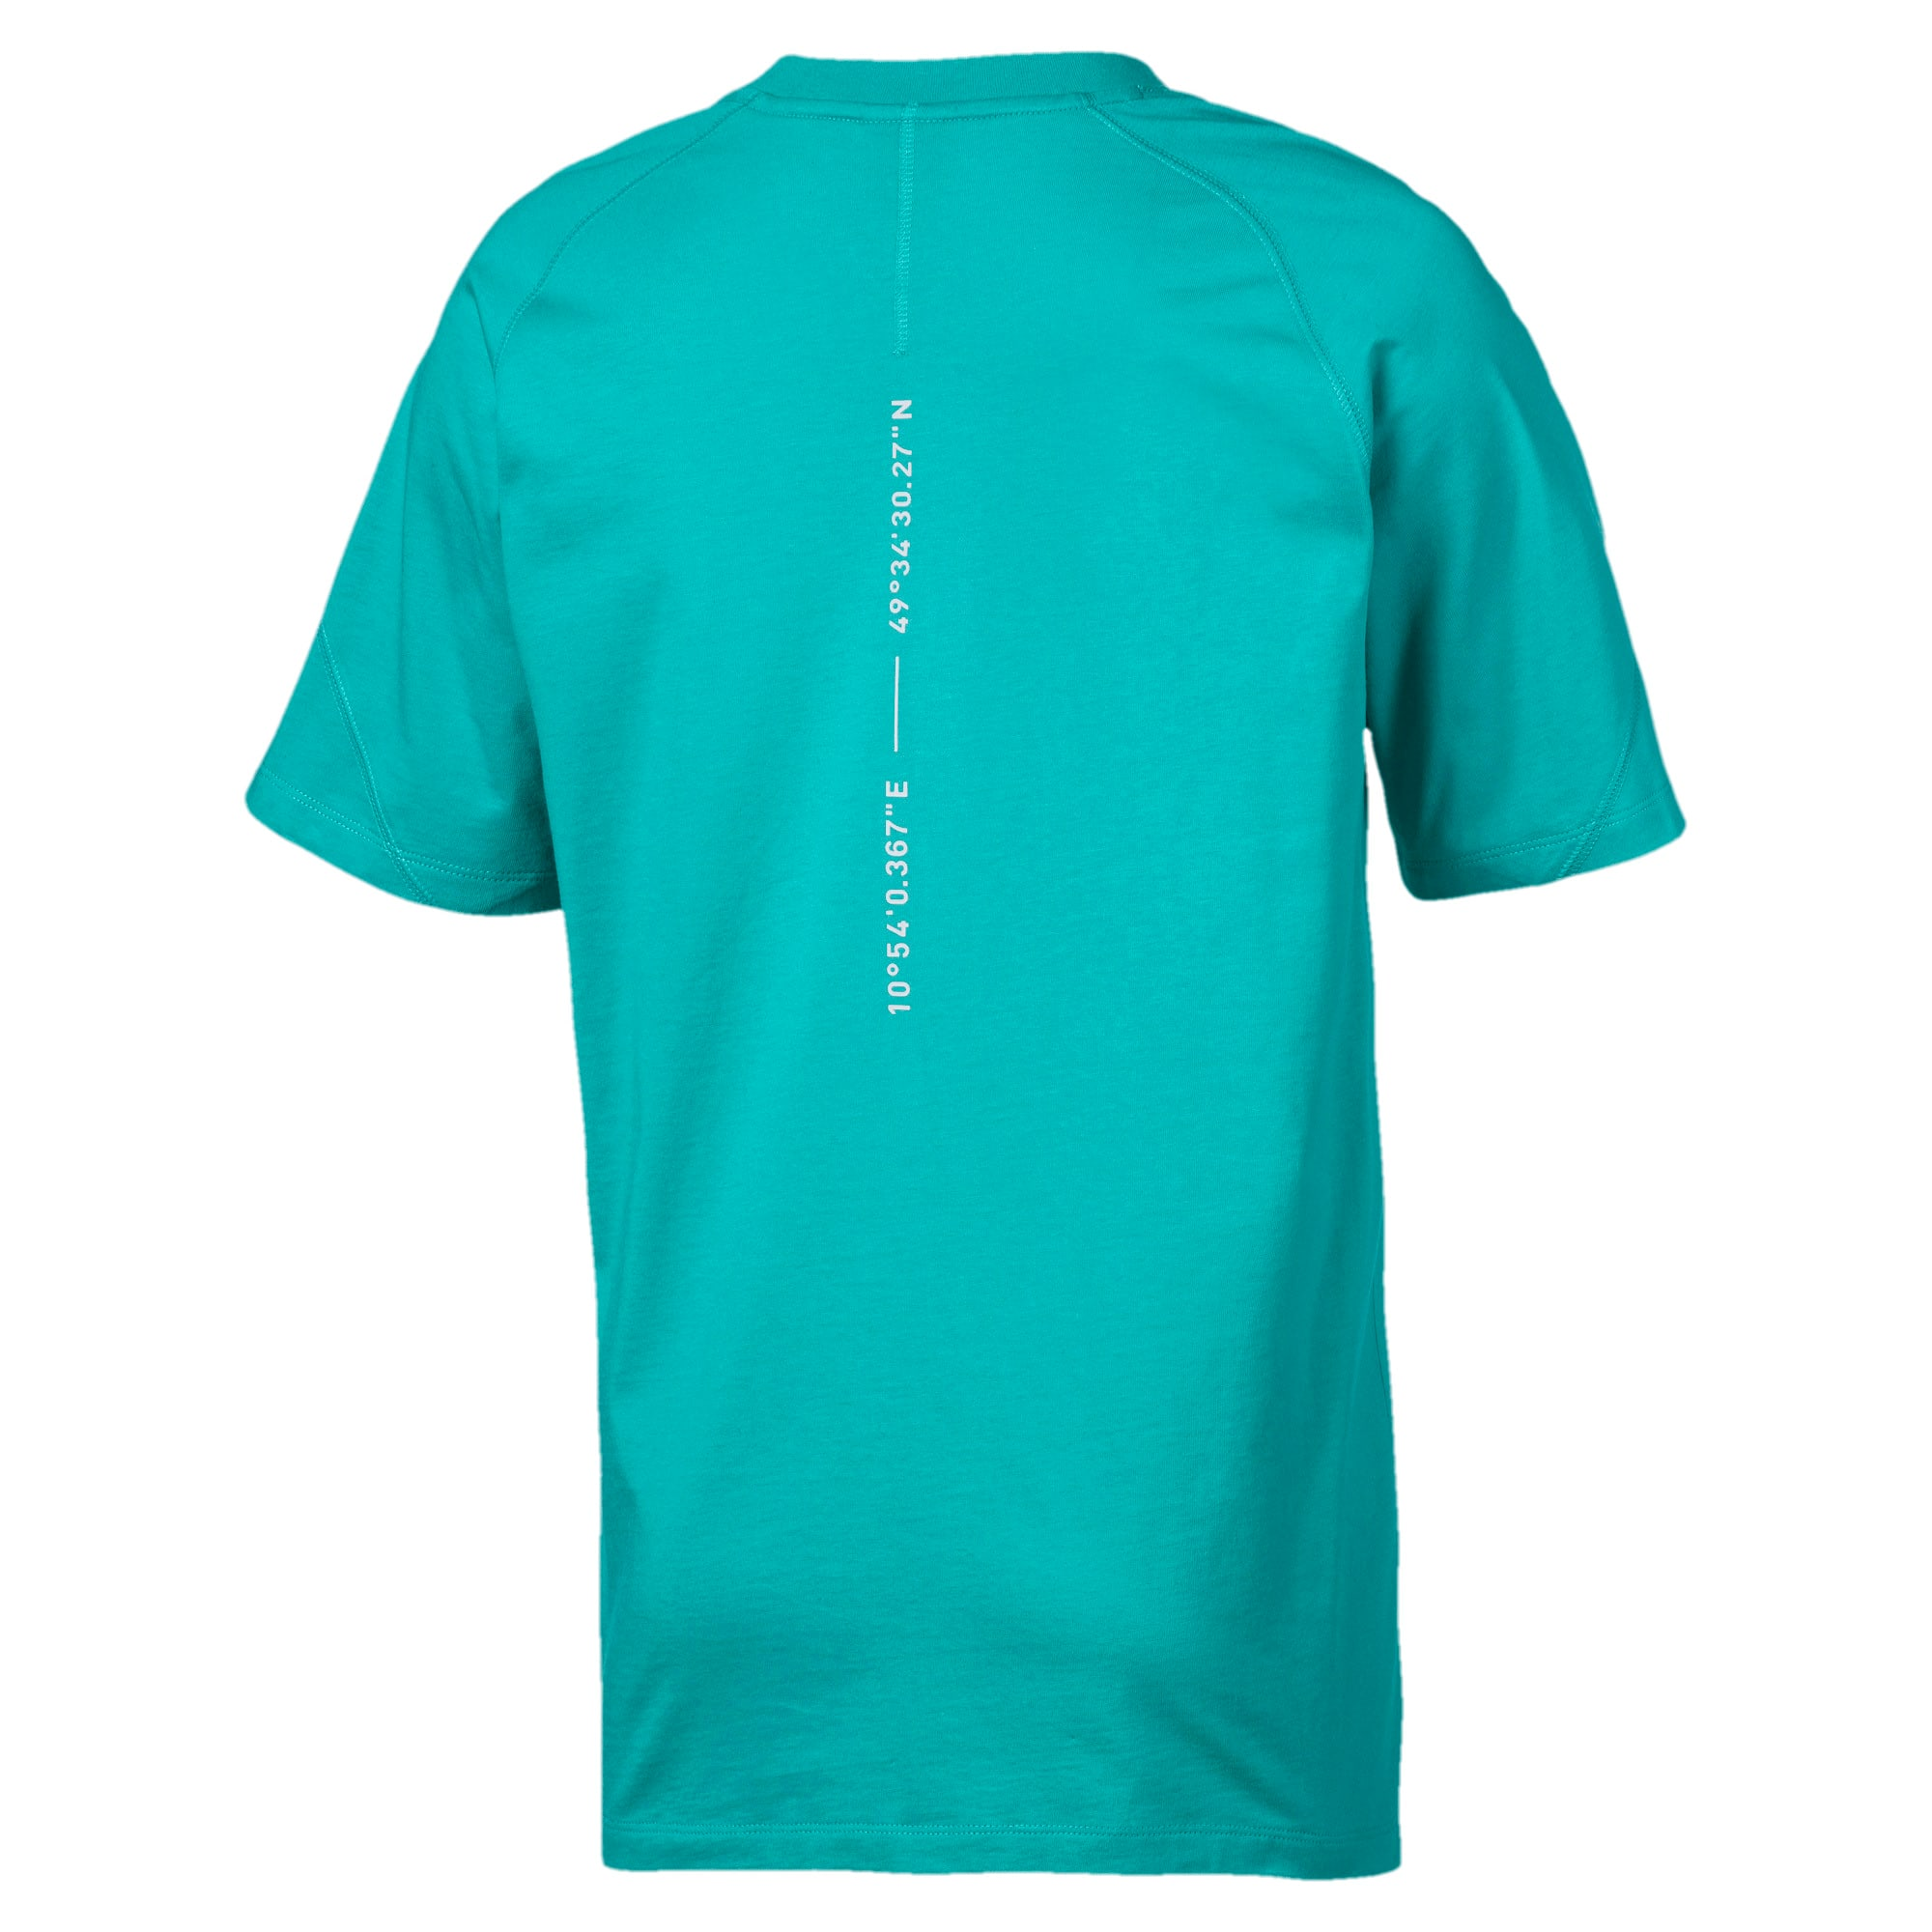 Thumbnail 5 of Epoch Men's Tee, Blue Turquoise, medium